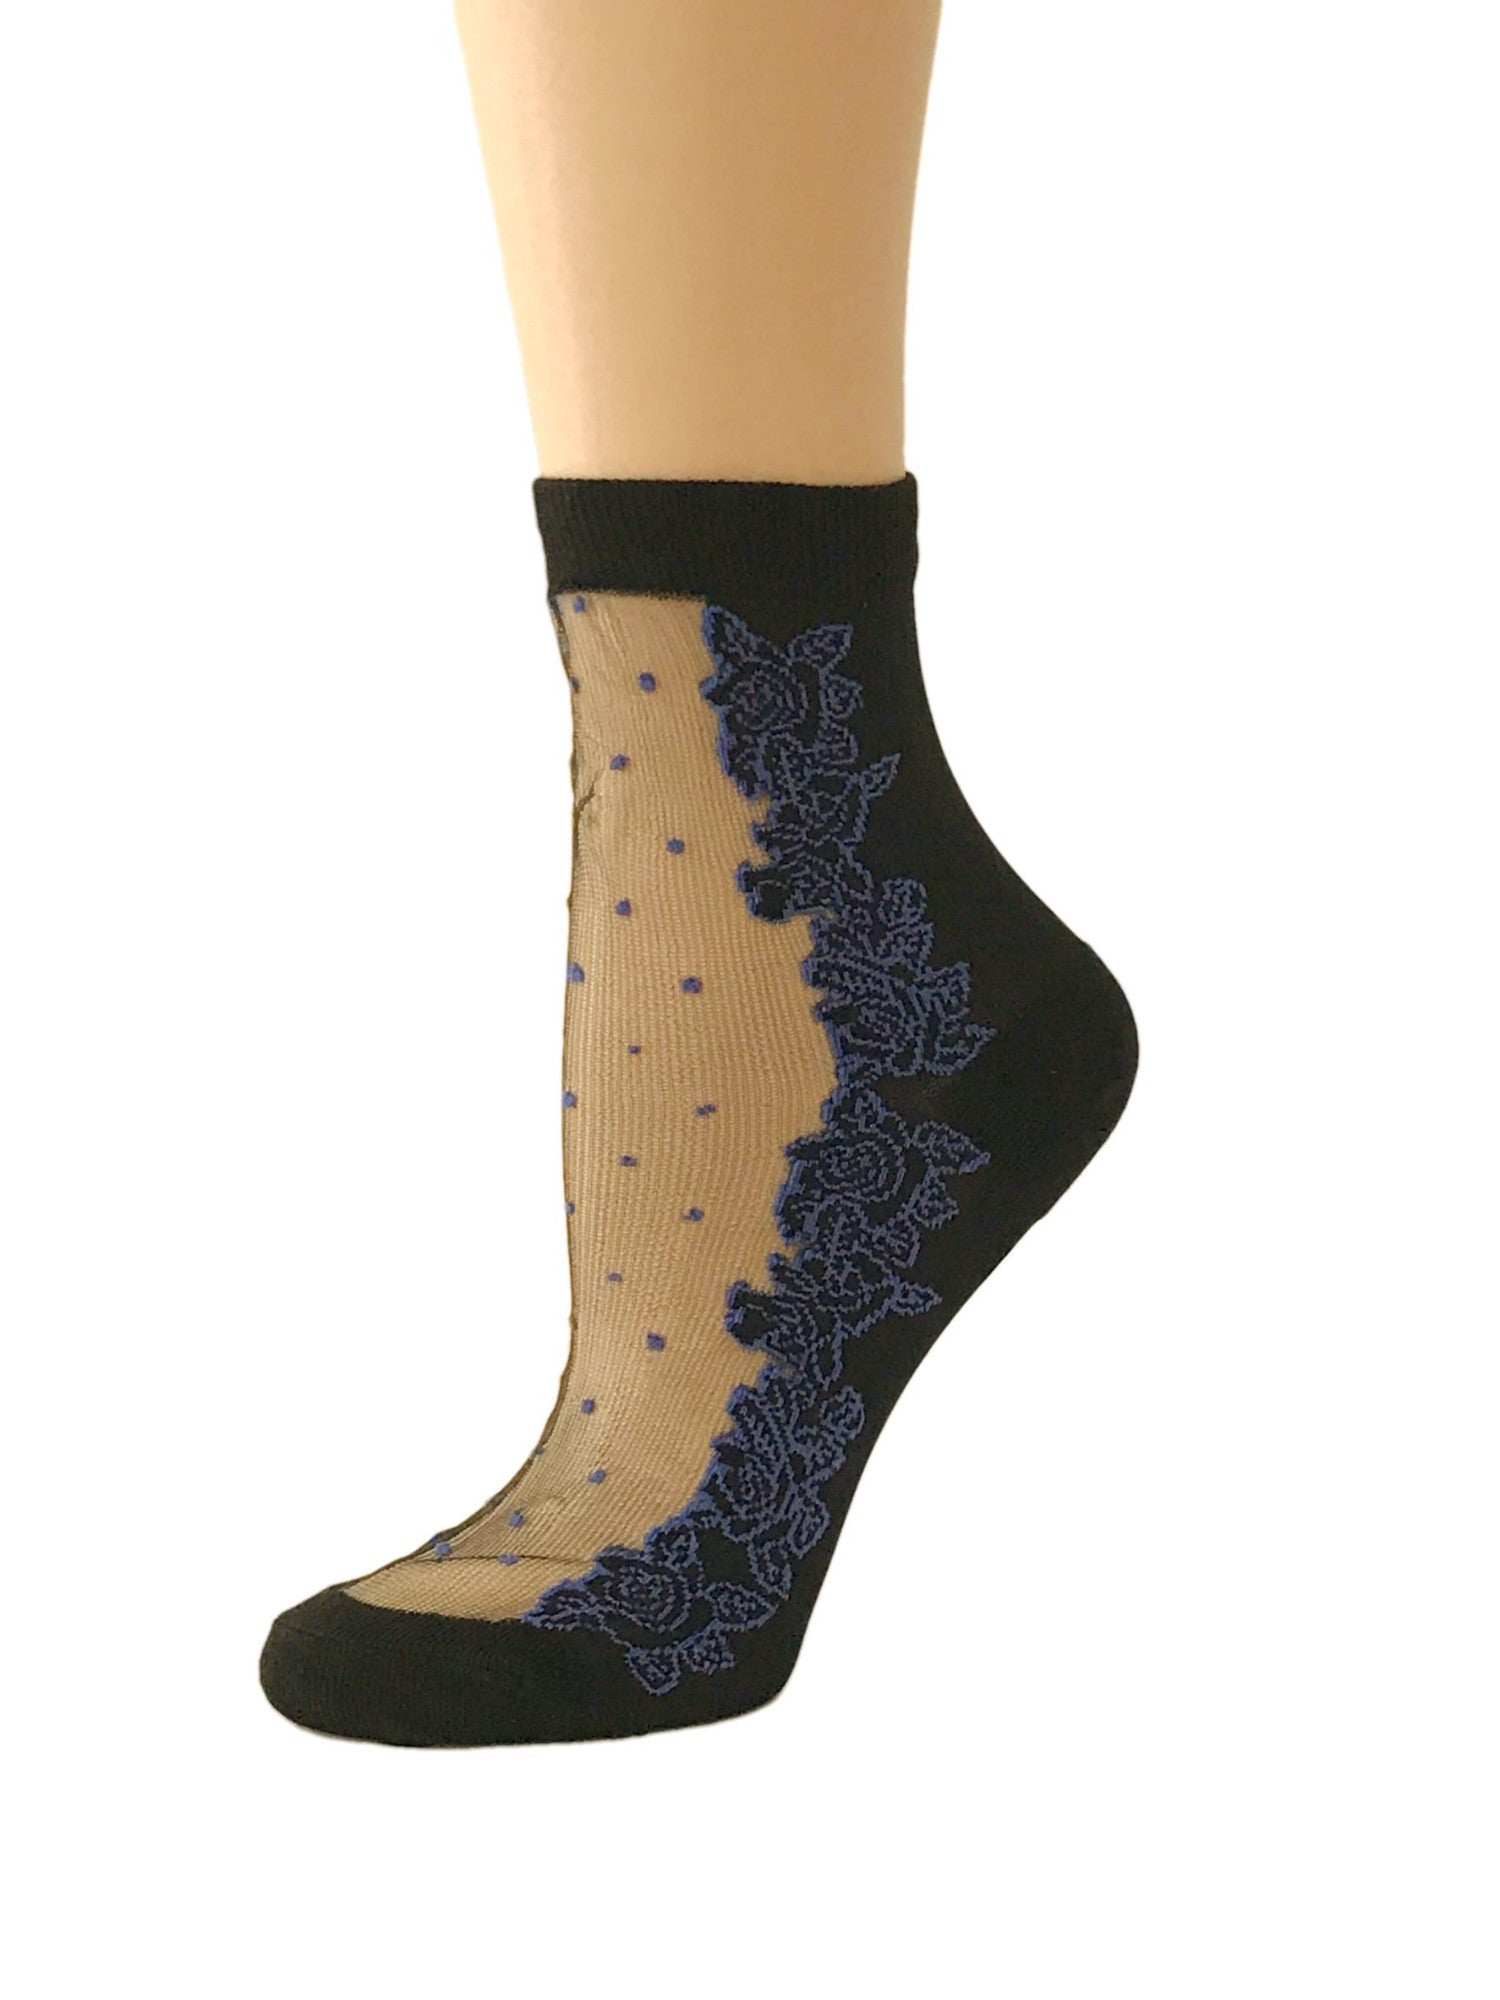 Dotted Blue Roses Sheer Socks - Global Trendz Fashion®